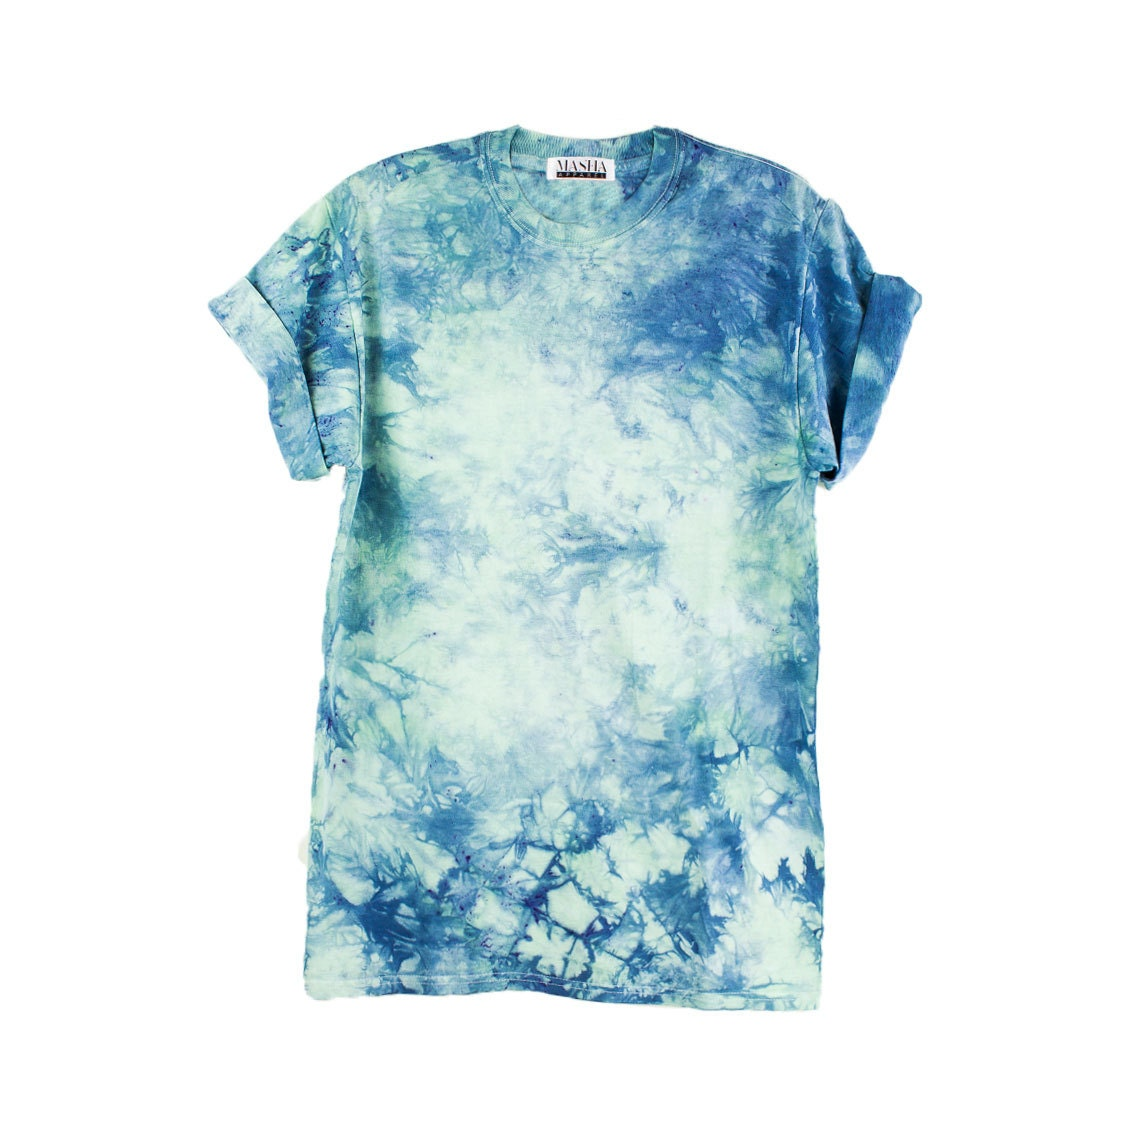 Tie dye t shirt psychedelic festival shirt gift for fathers for Customized tie dye shirts